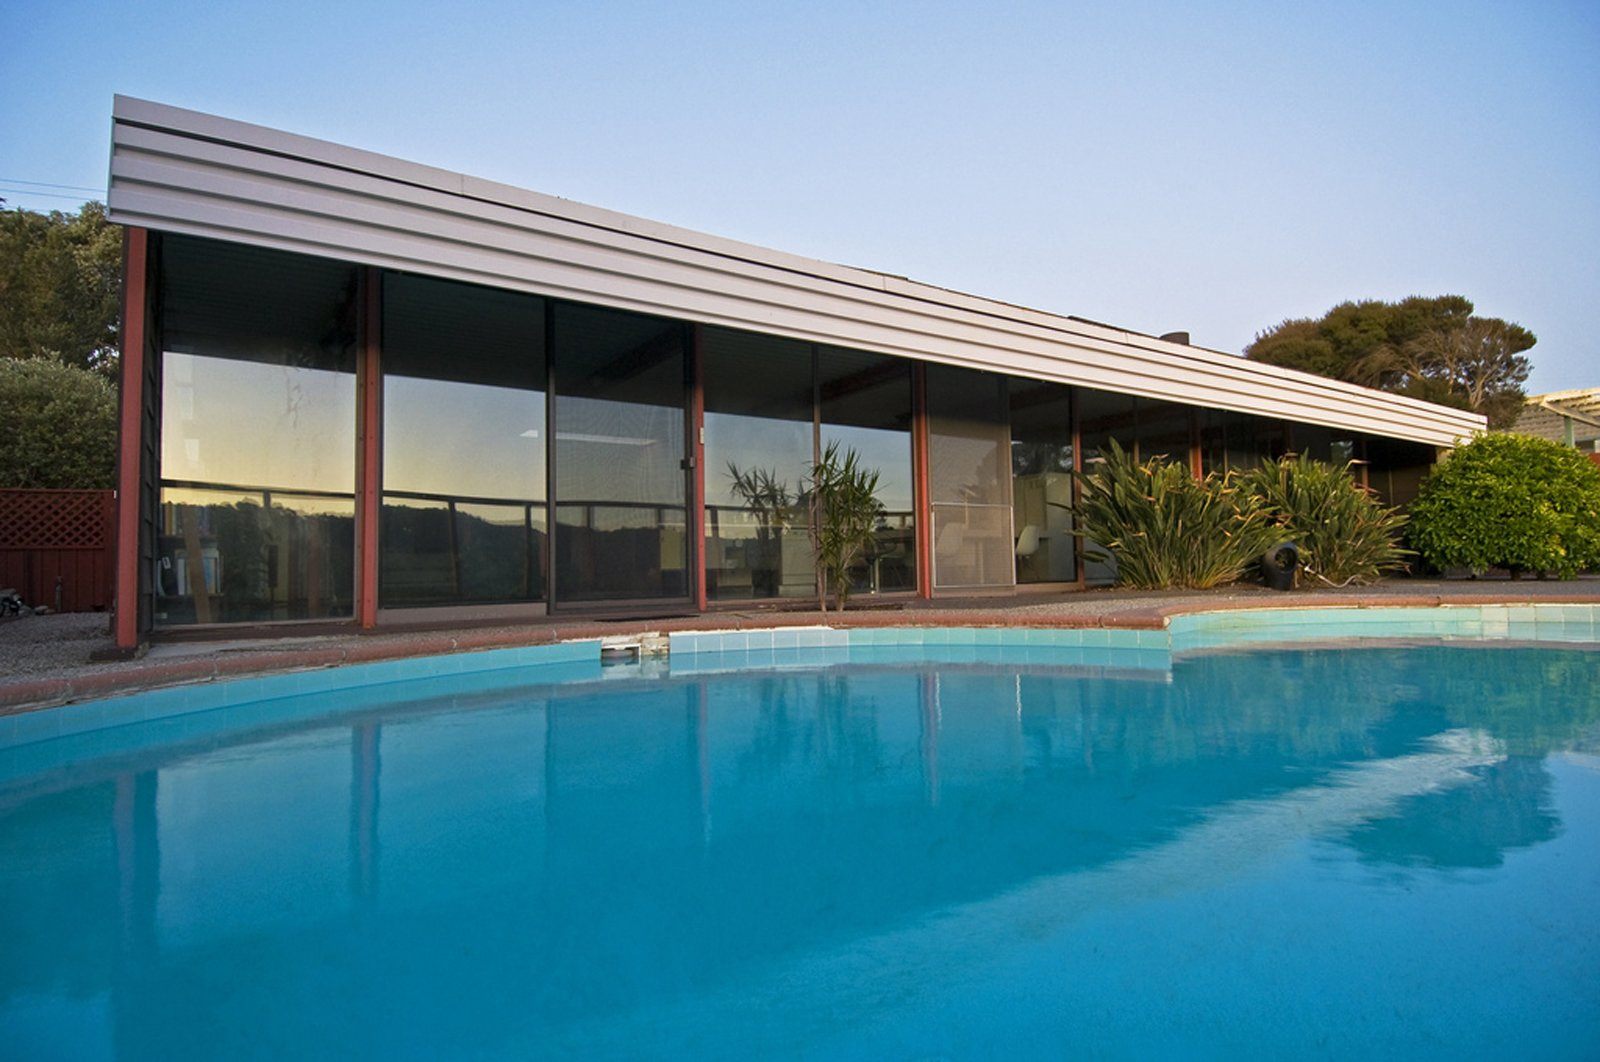 Photo 9 of 9 in People in Glass Houses: The Legacy of Joseph Eichler